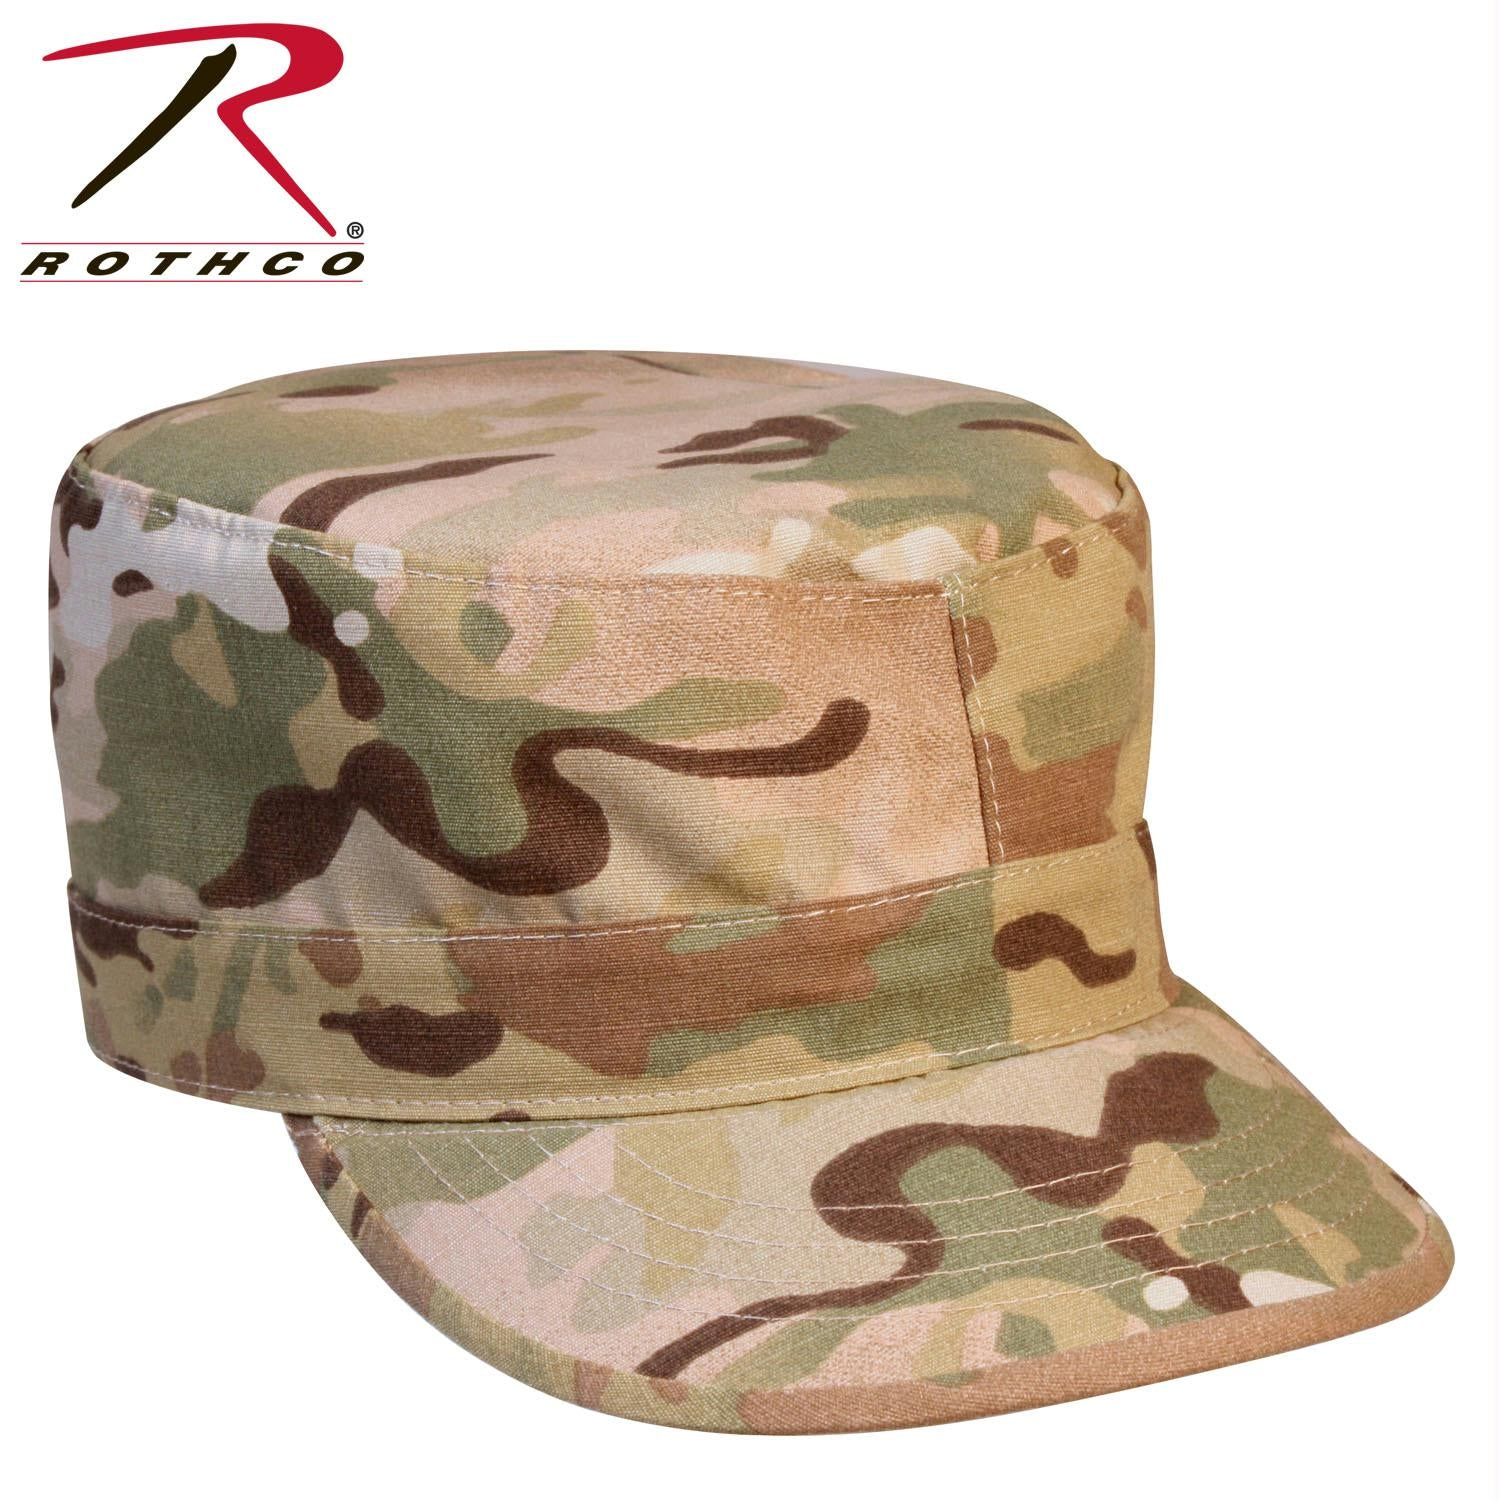 Rothco Multicam Rip-Stop Fatigue Cap - MultiCam / XS